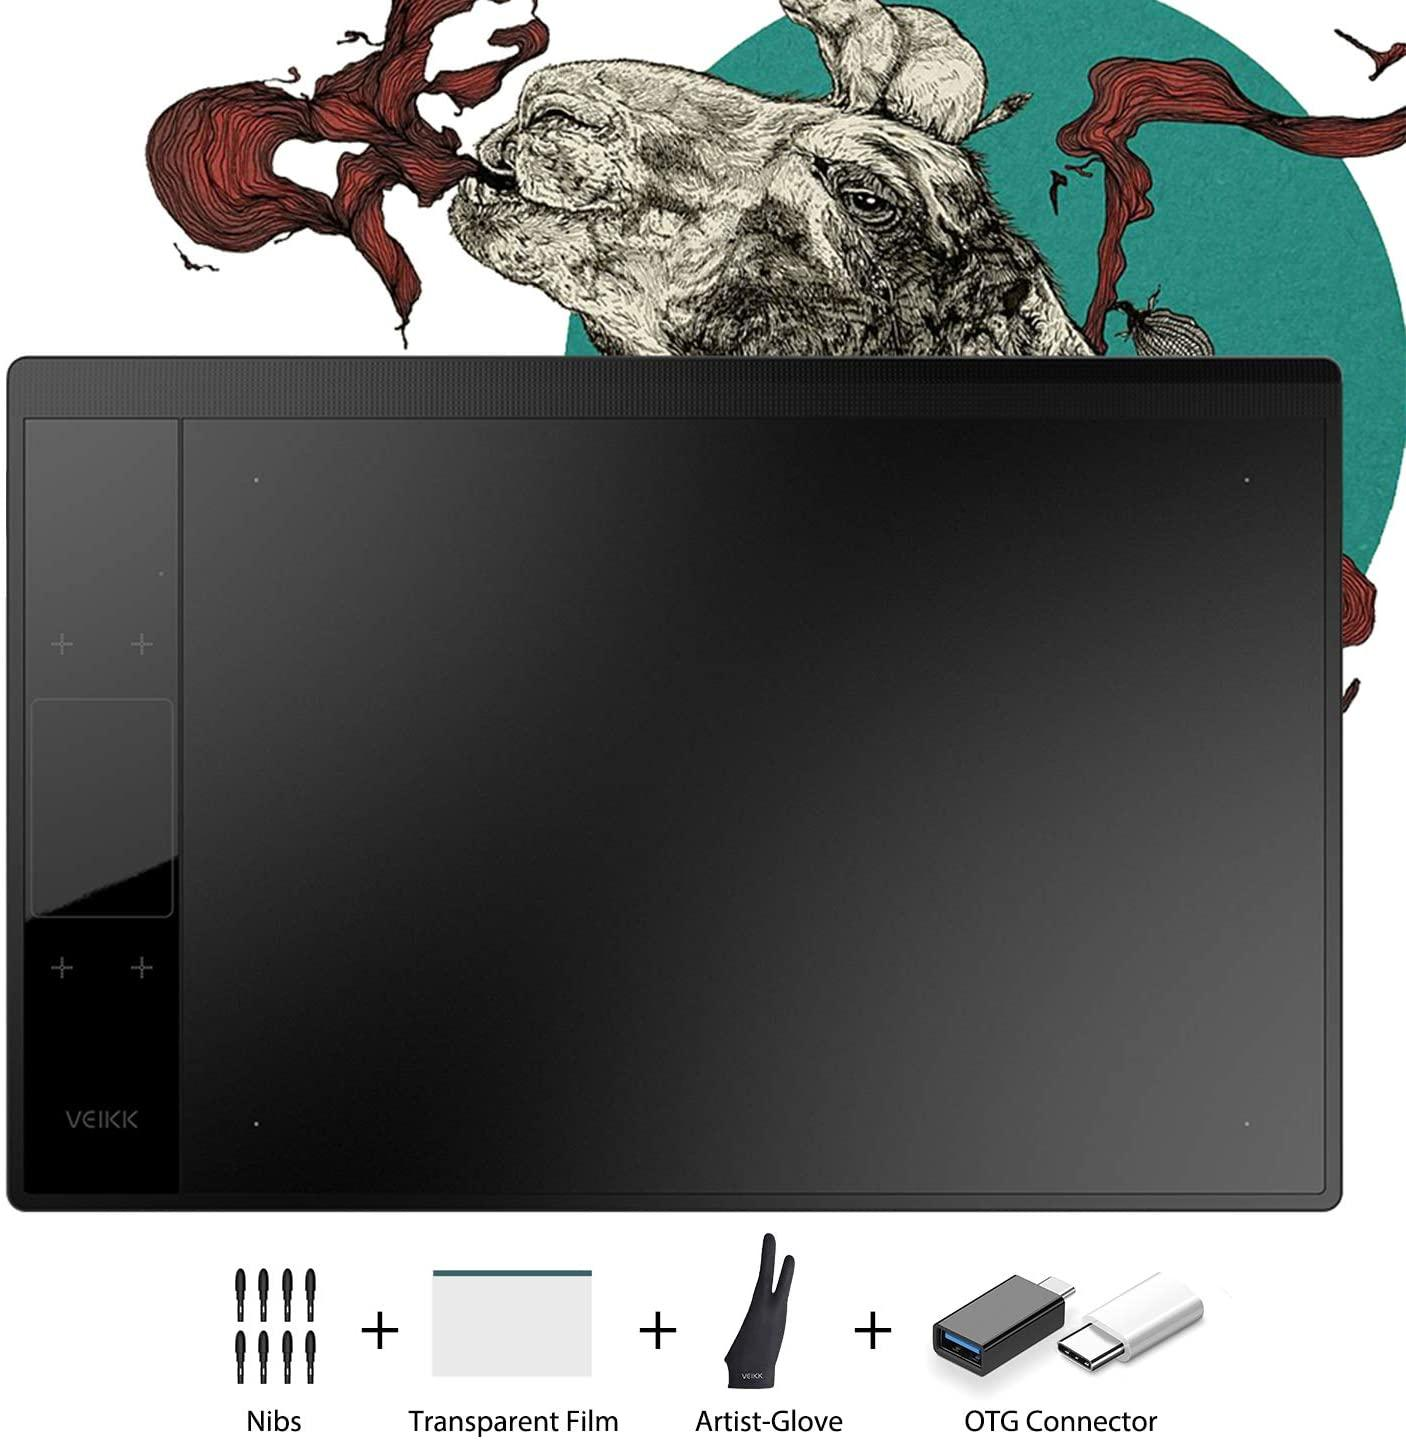 VEIKK A30 V2 10x6 inch Graphic Drawing Tablet Digital Pen Tablet with 8192 Levels Battery-Free Pen, 4 Touch Keys and a Touch Pad